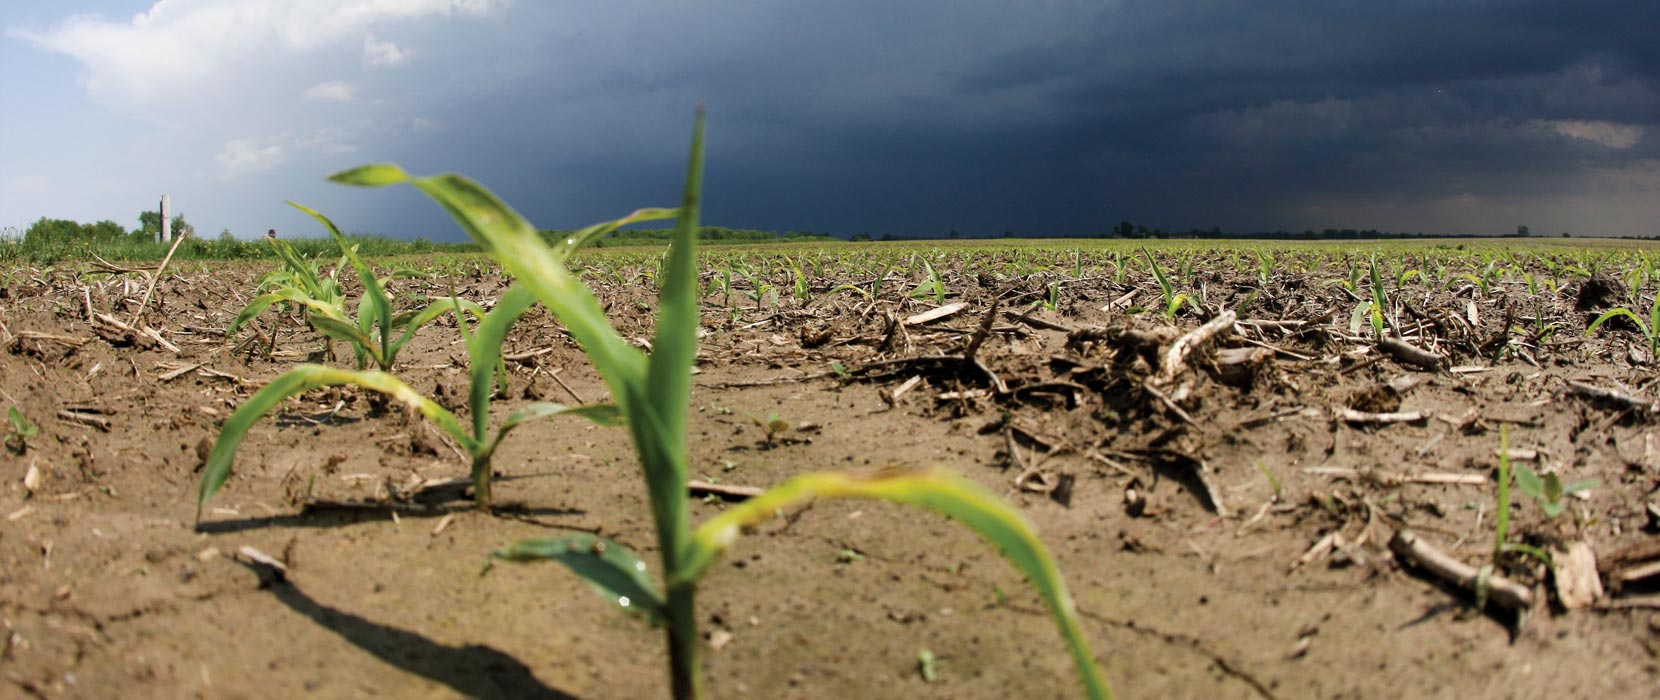 a storm looms in the background of young corn crops in a field